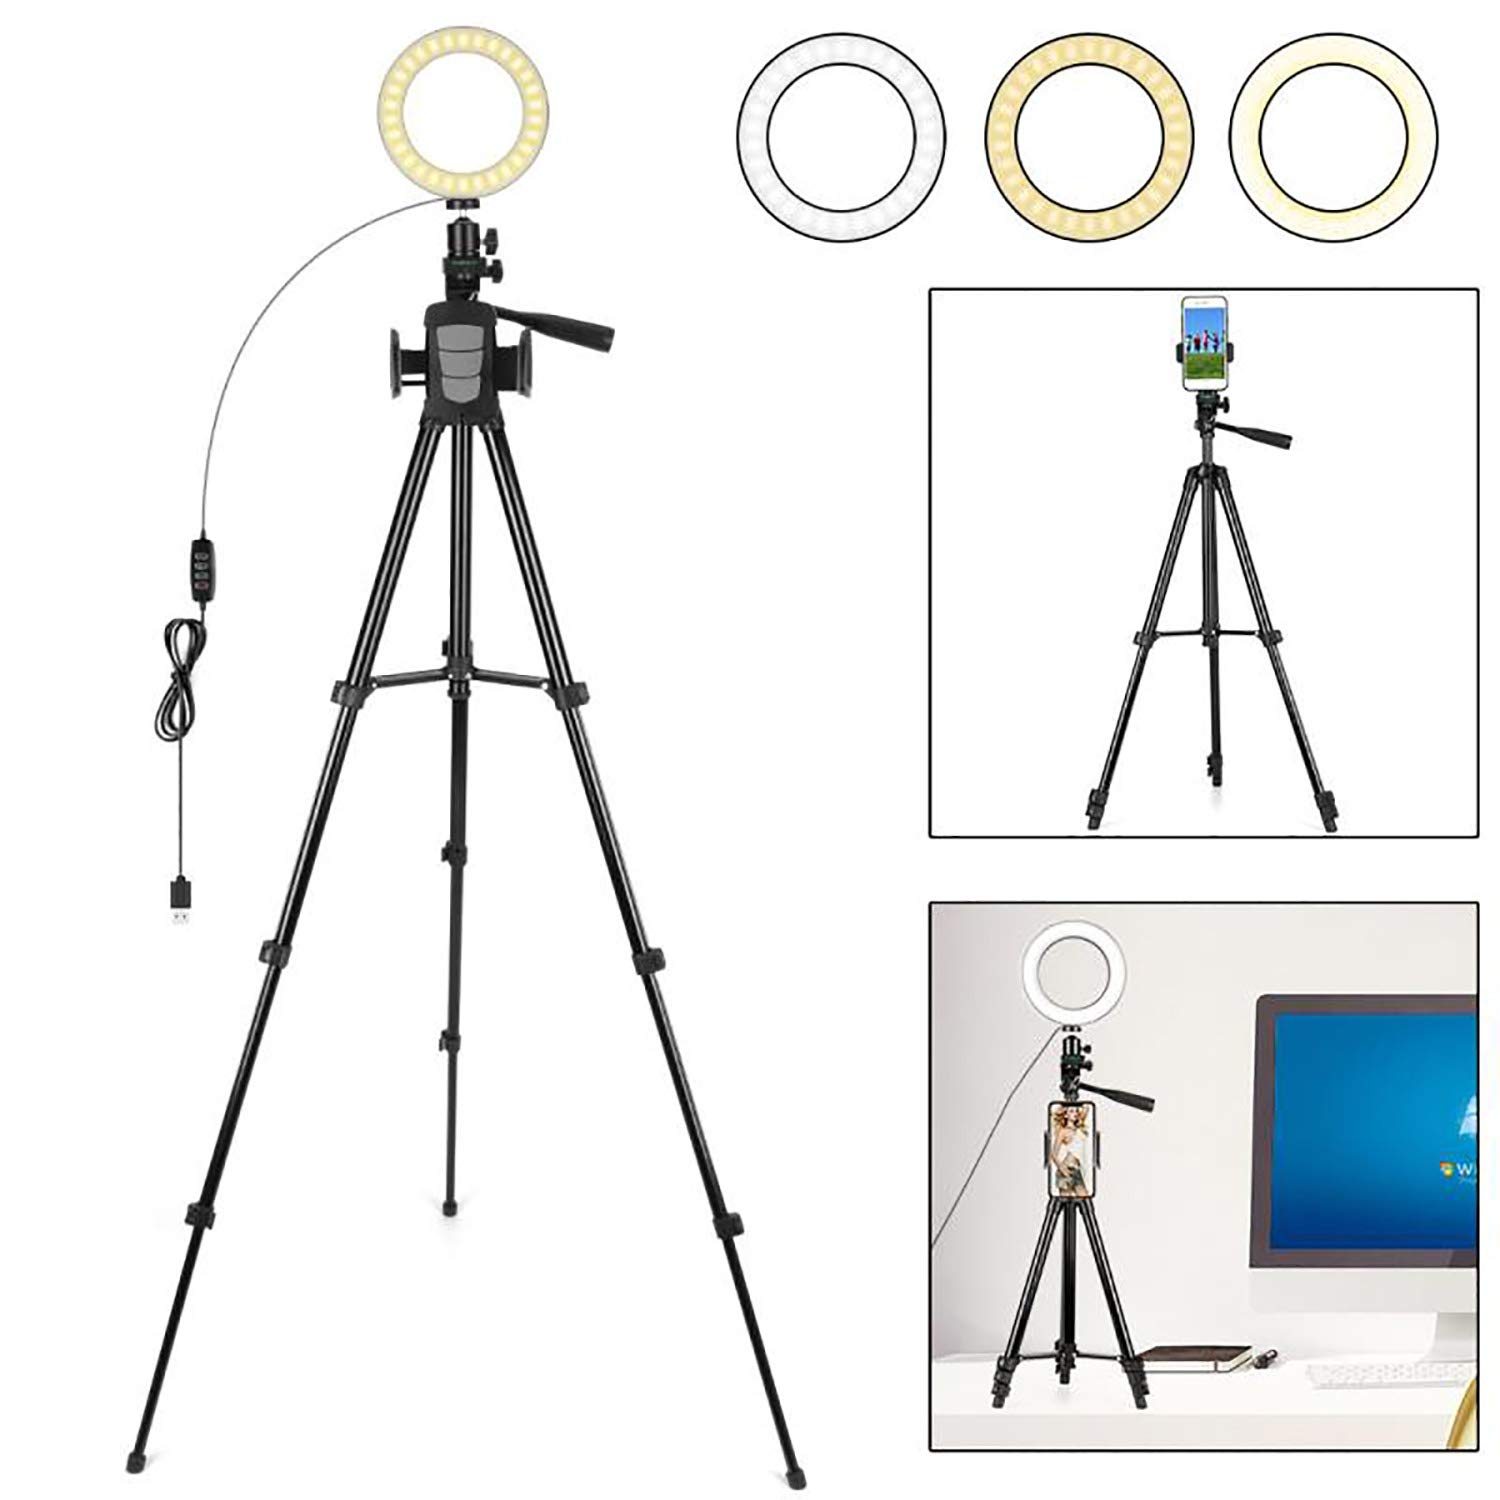 FCNEHLM Ring Light with Stand and Phone Holder - 6.3'' LED Camera Light with Tripod for YouTube Video and Makeup with 3 Light Modes & 10 Brightness Level